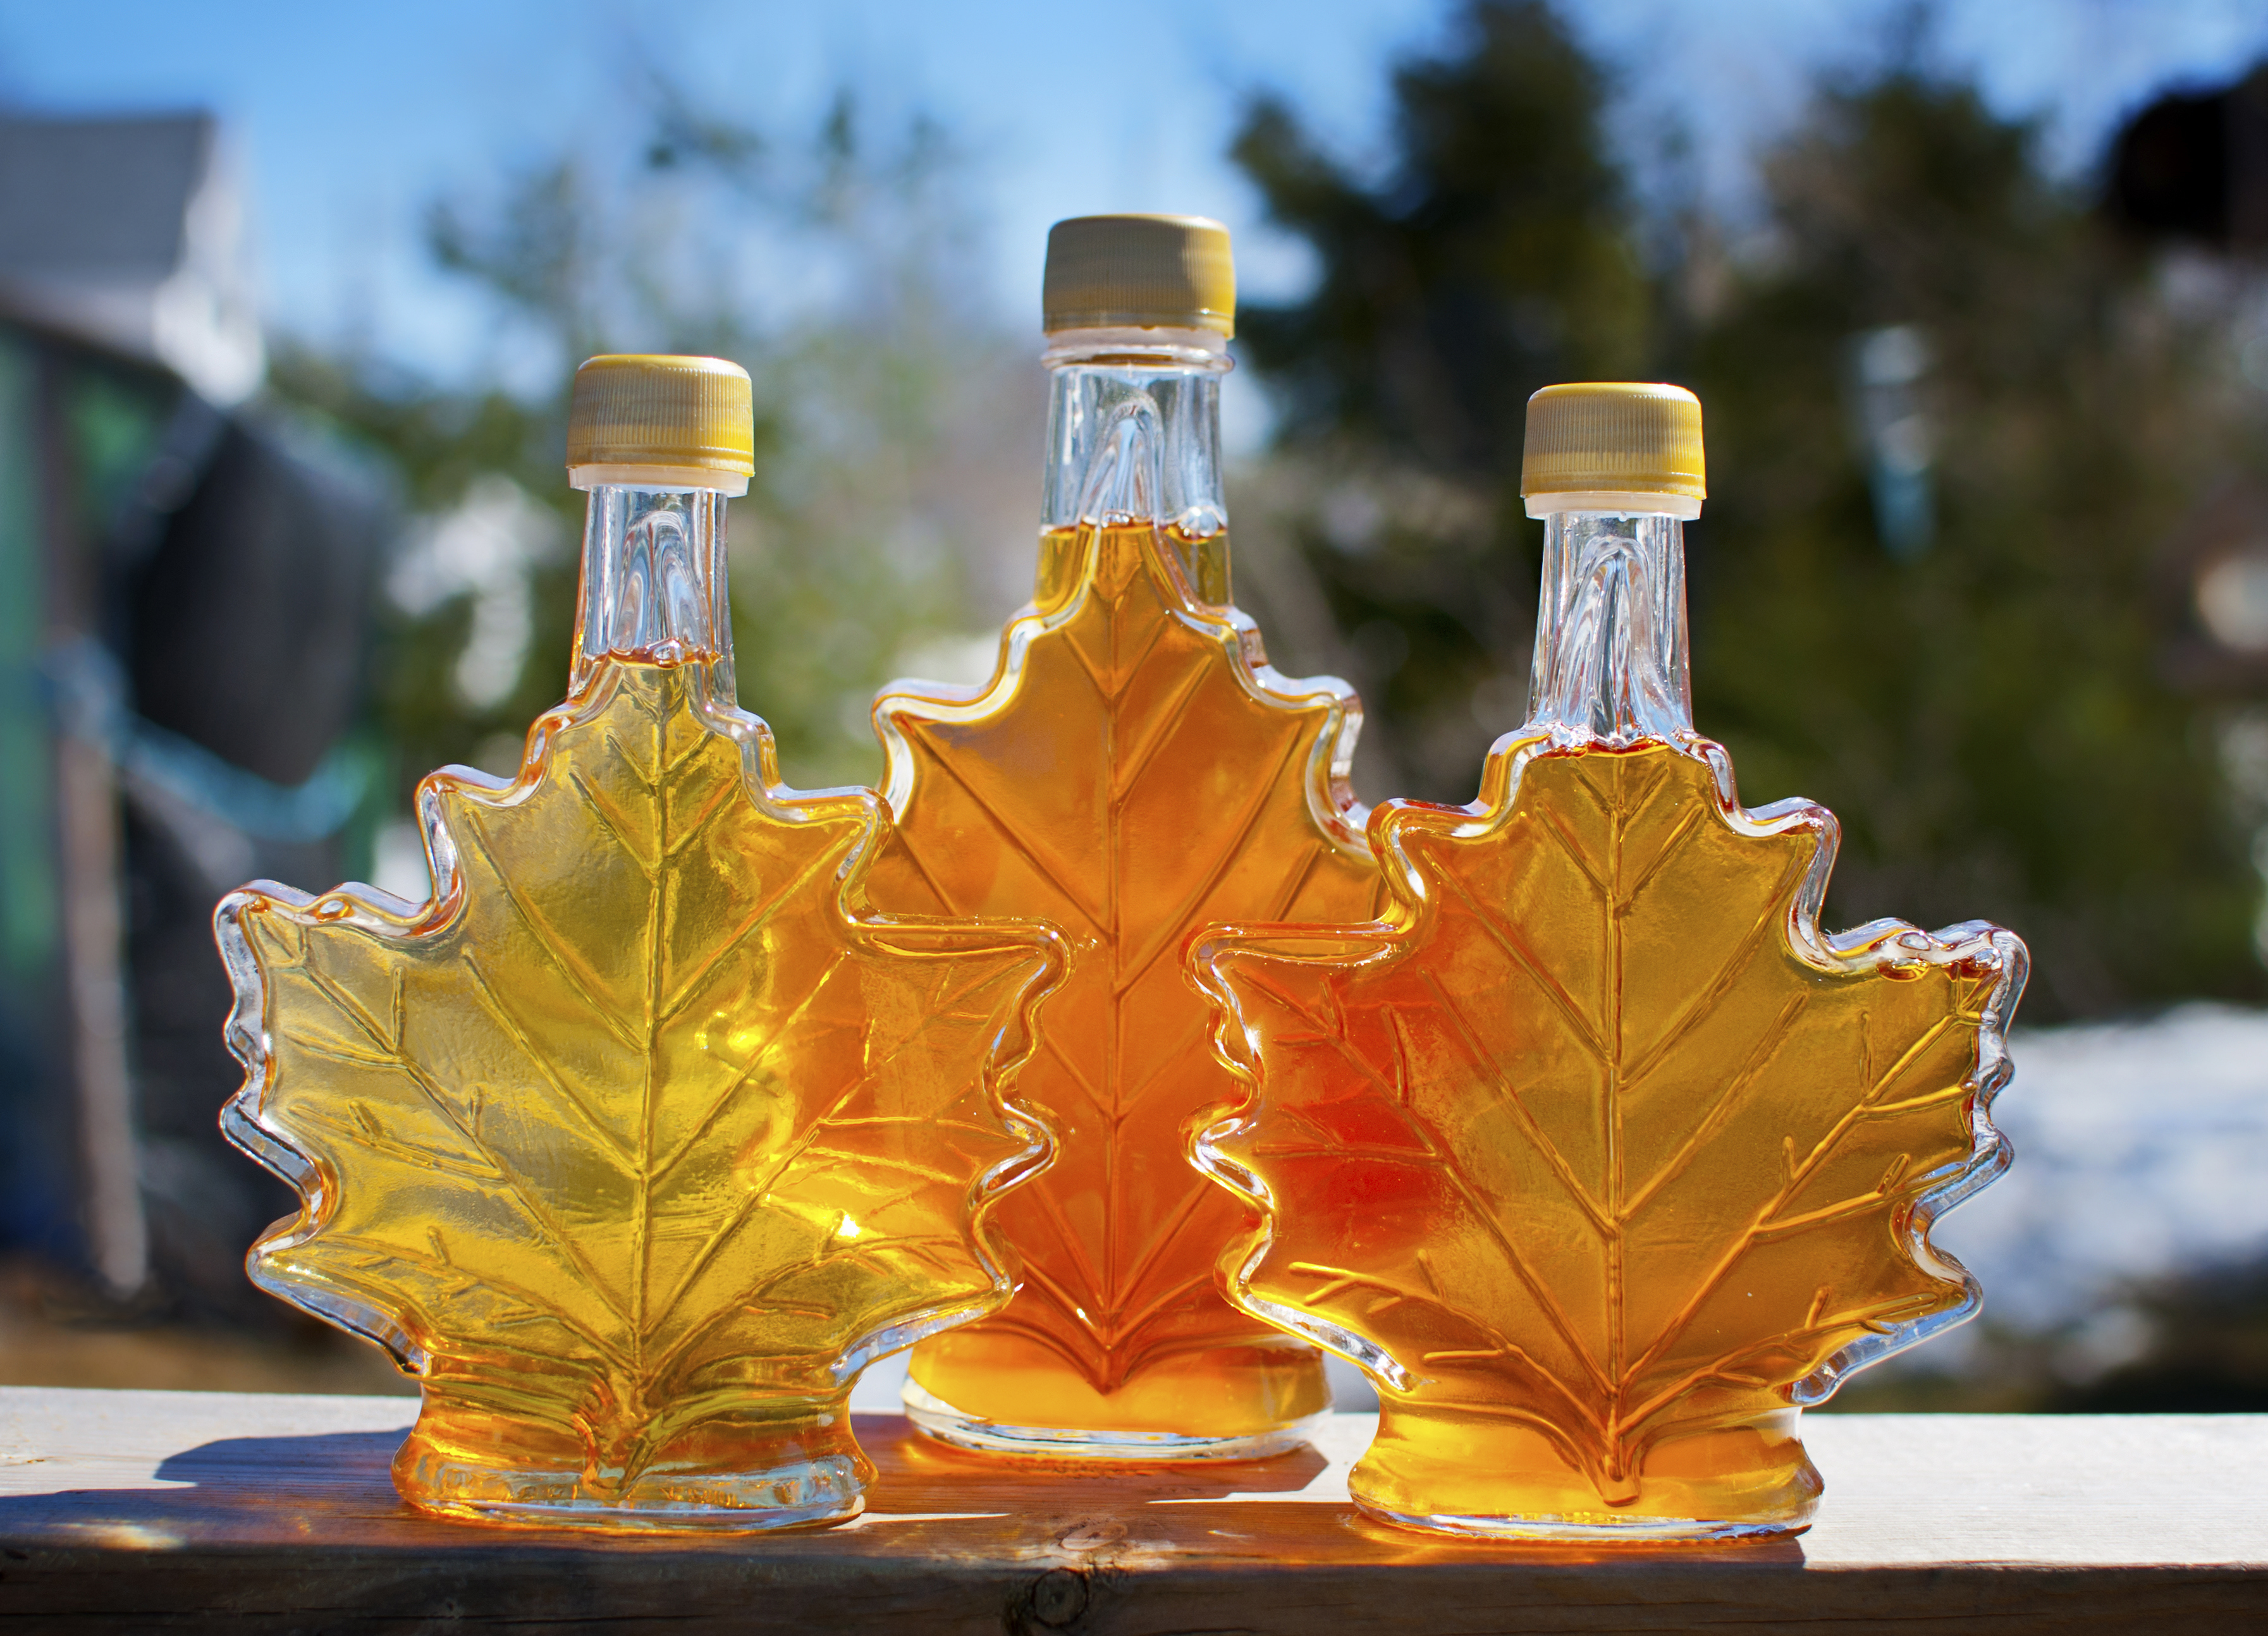 Corporate Giving: What's Next? Lessons from the Maple Syrup Mafia